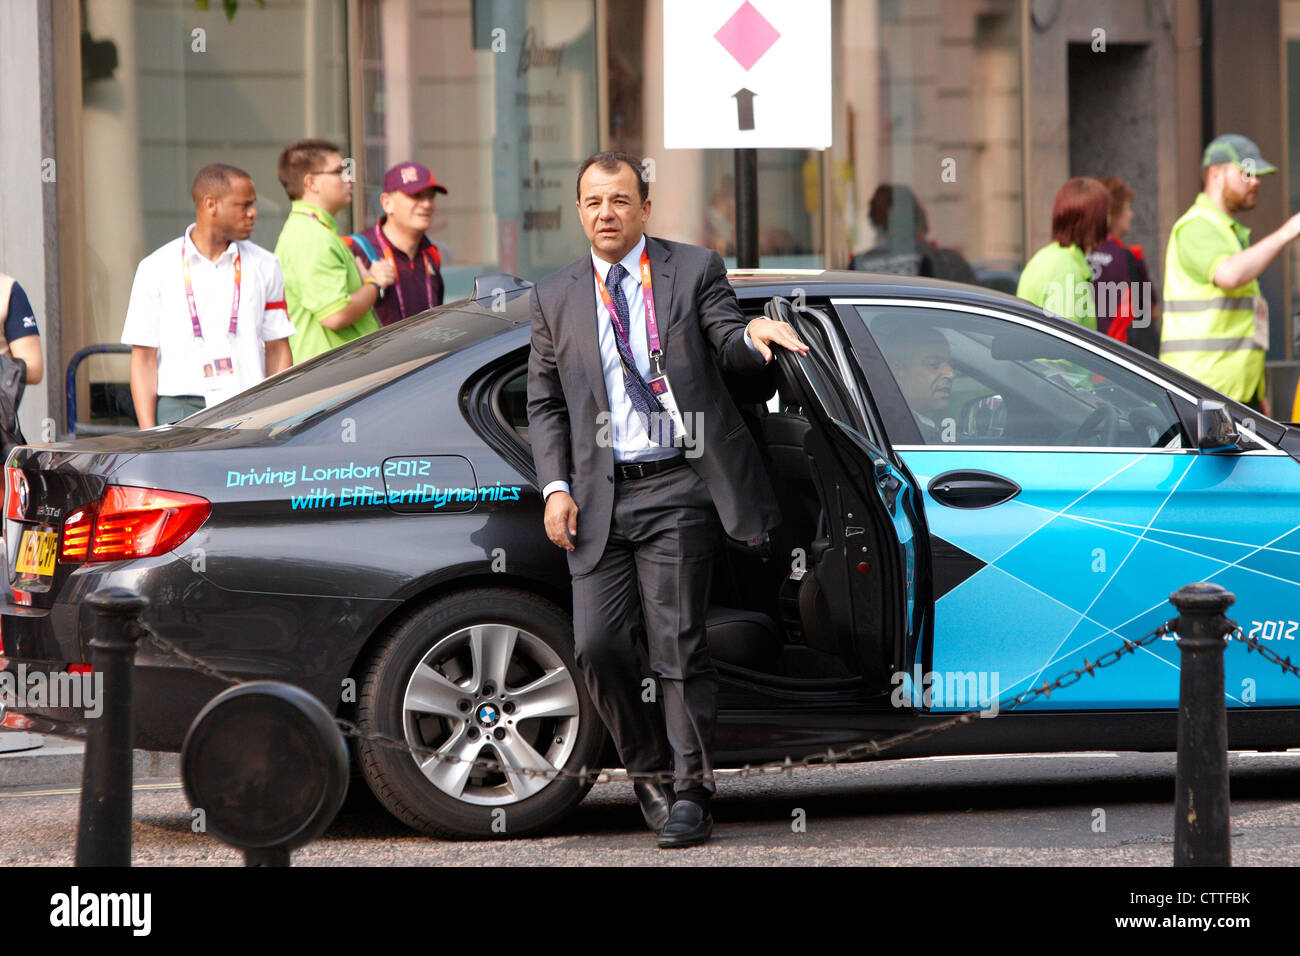 IOC Olympic delegate exits an offical games car outside the Hilton Hotel, Park Lane, London. - Stock Image